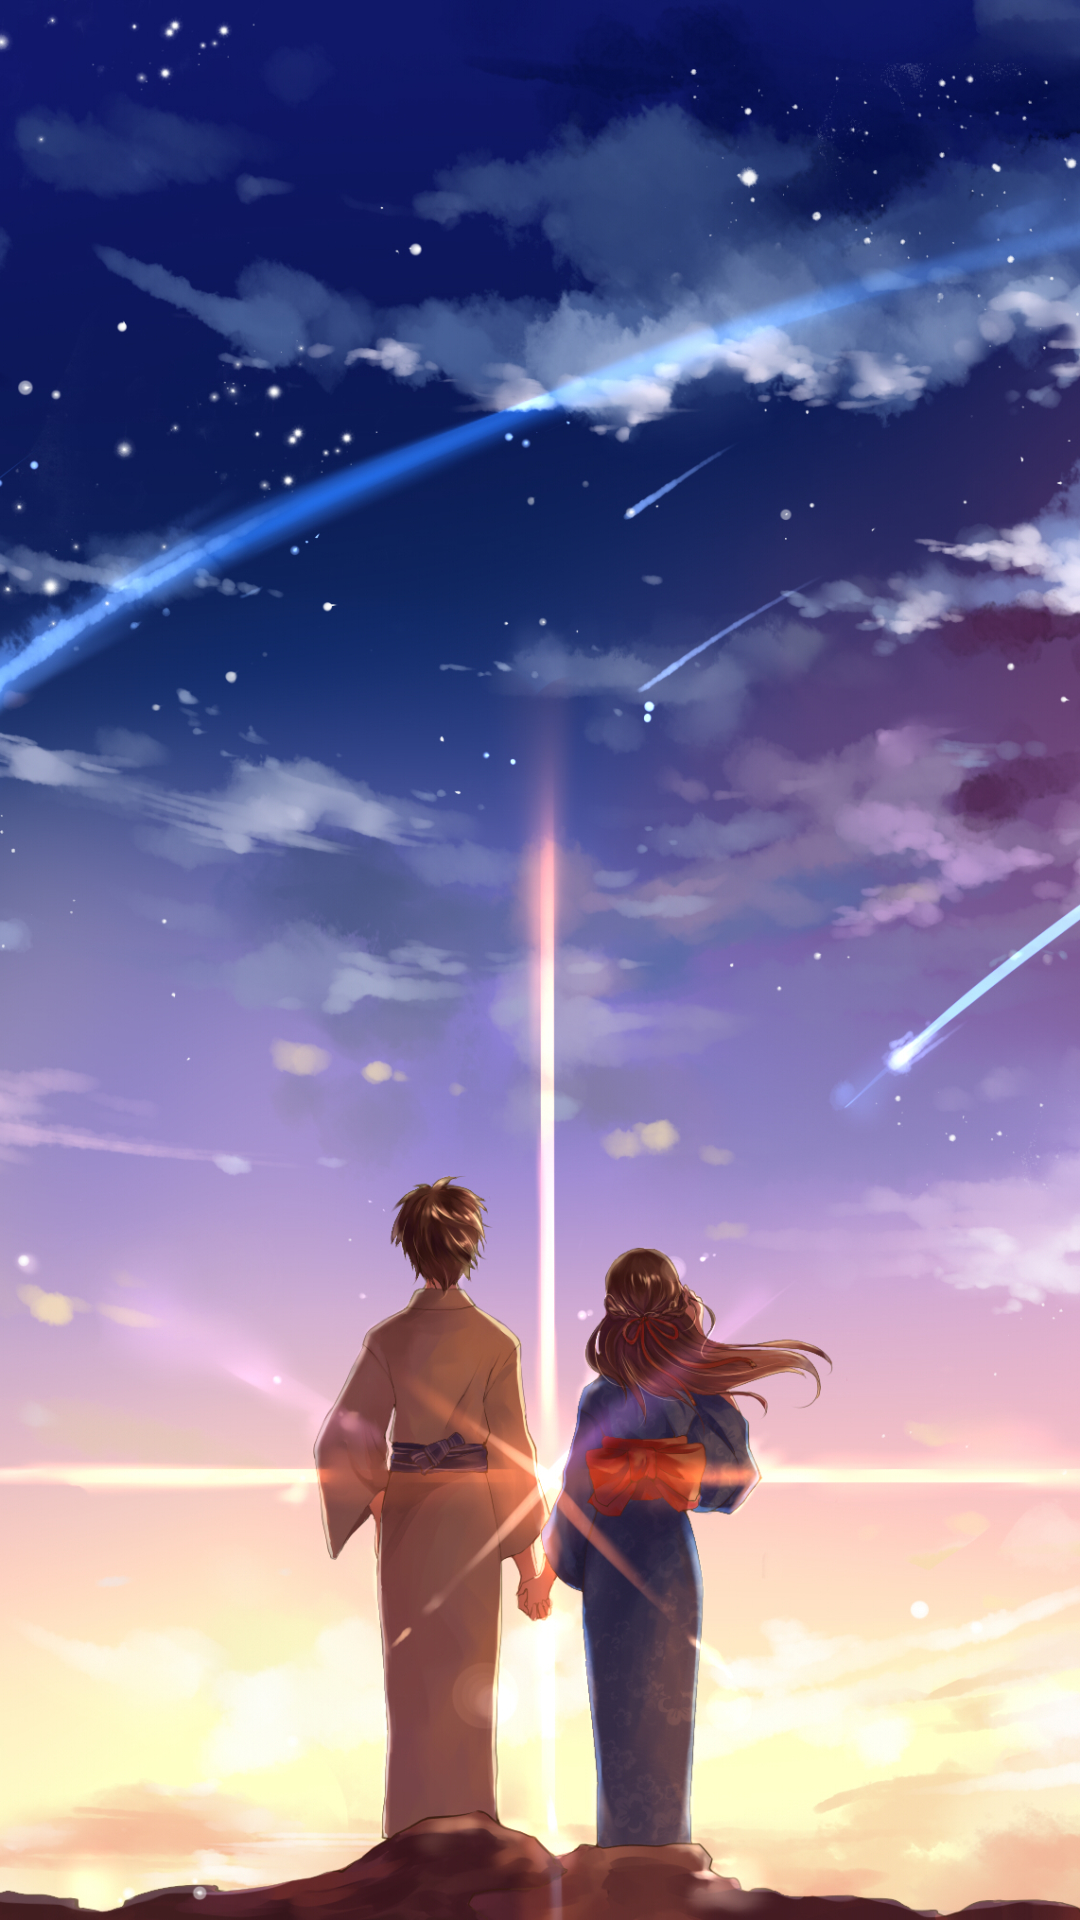 Kimi No Na Wa Cute Android Wallpaper Android Hd Wallpapers